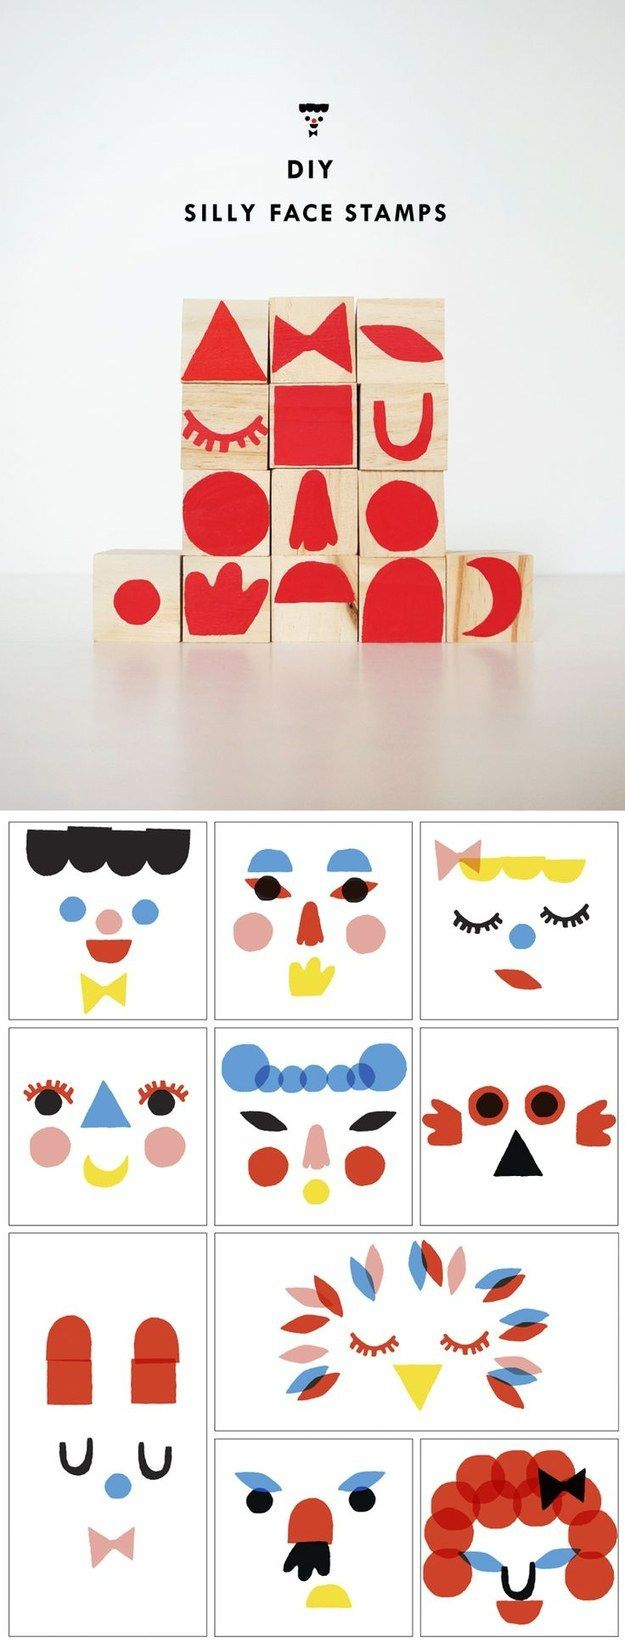 Criar a arte mais lunático que nunca com estes selos cara boba. | The 42 Definitively Cutest DIY Projects Of All Time